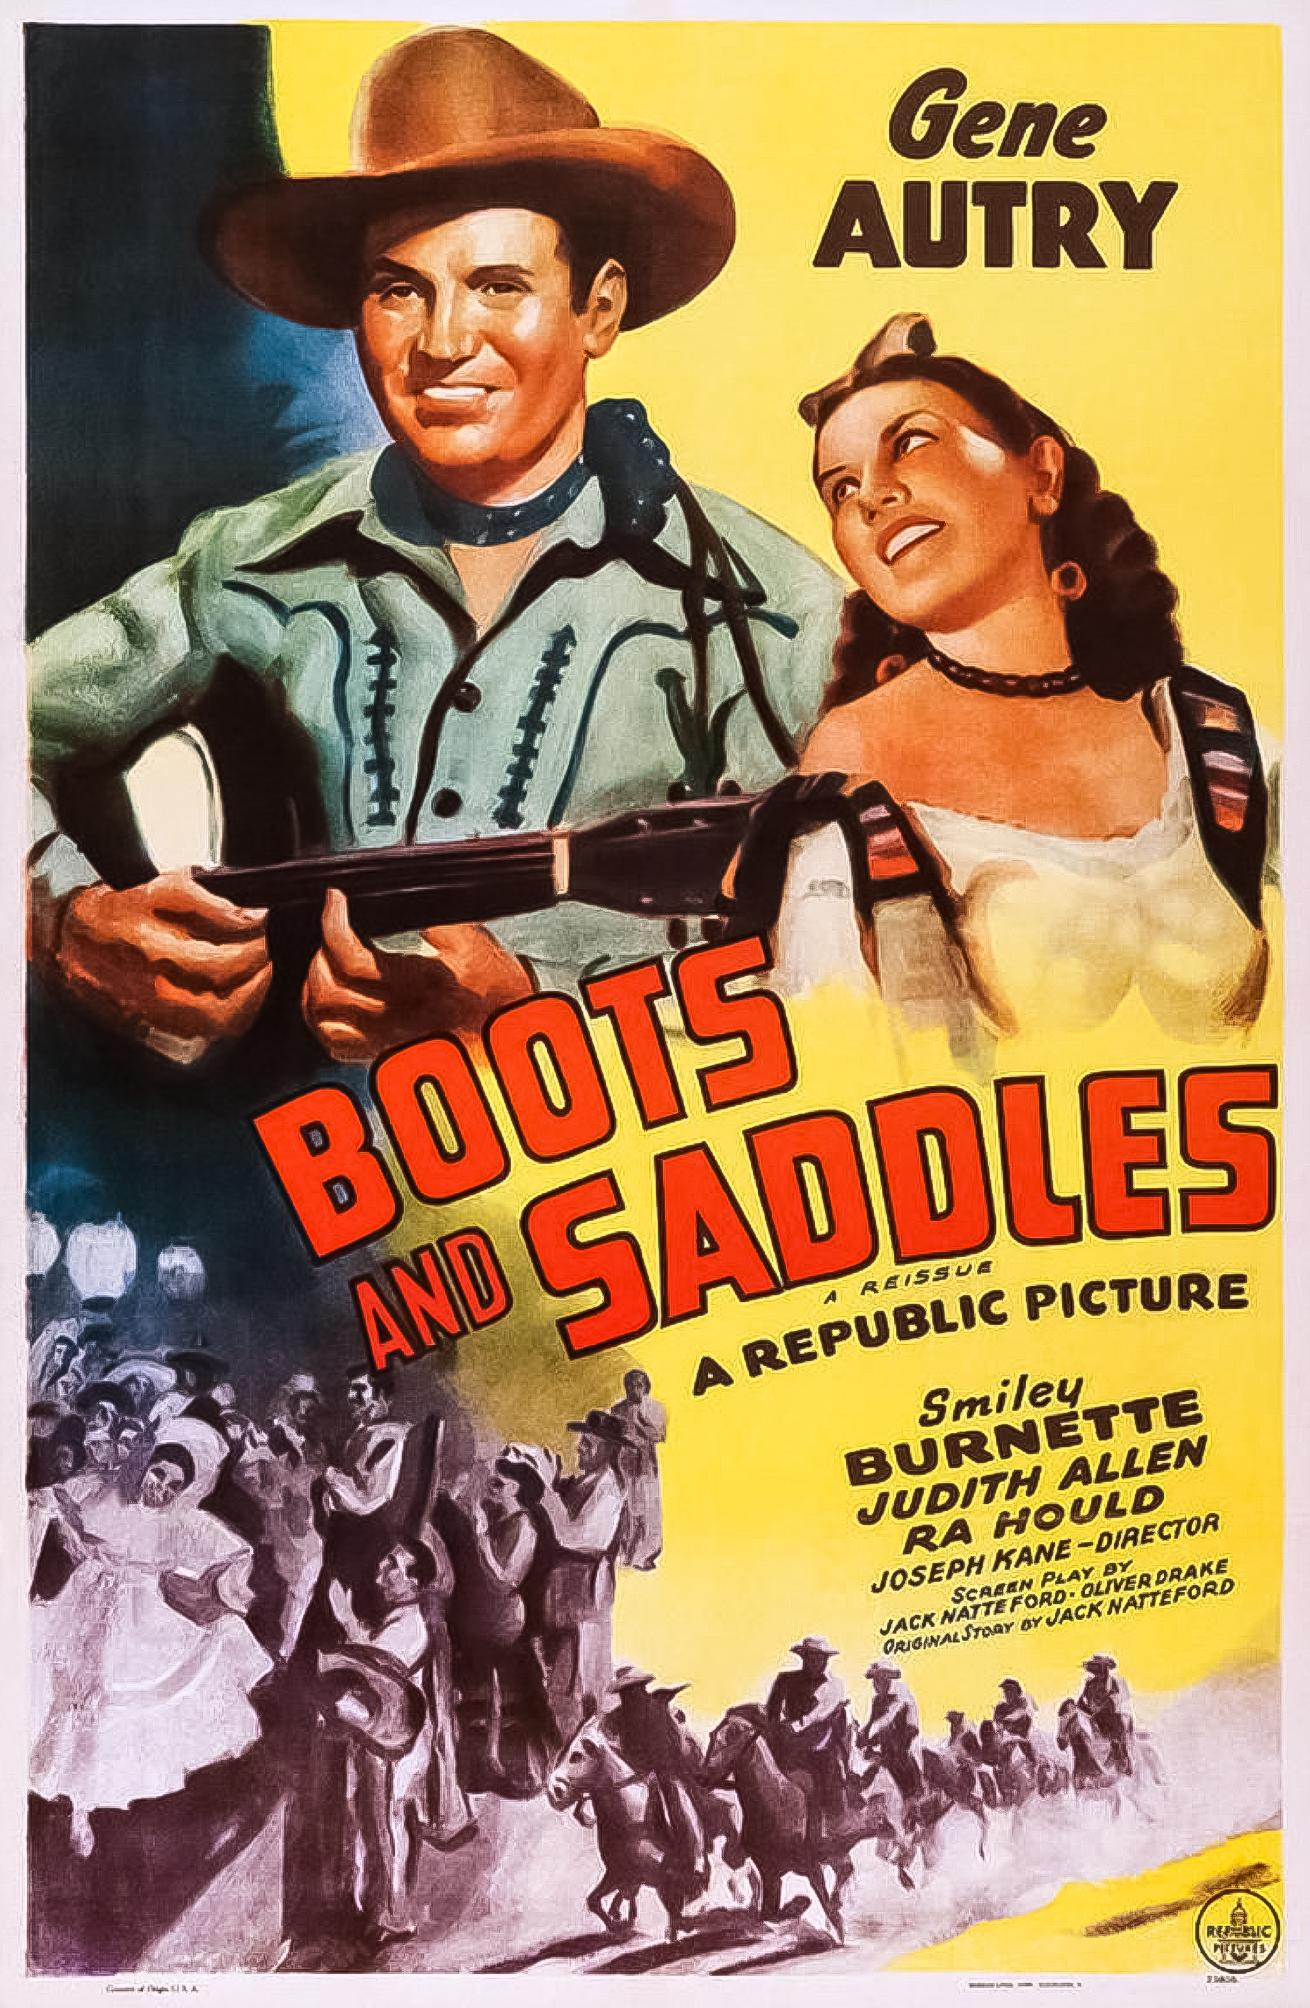 Gene Autry, Judith Allen, Smiley Burnette, and Ronald Sinclair in Boots and Saddles (1937)